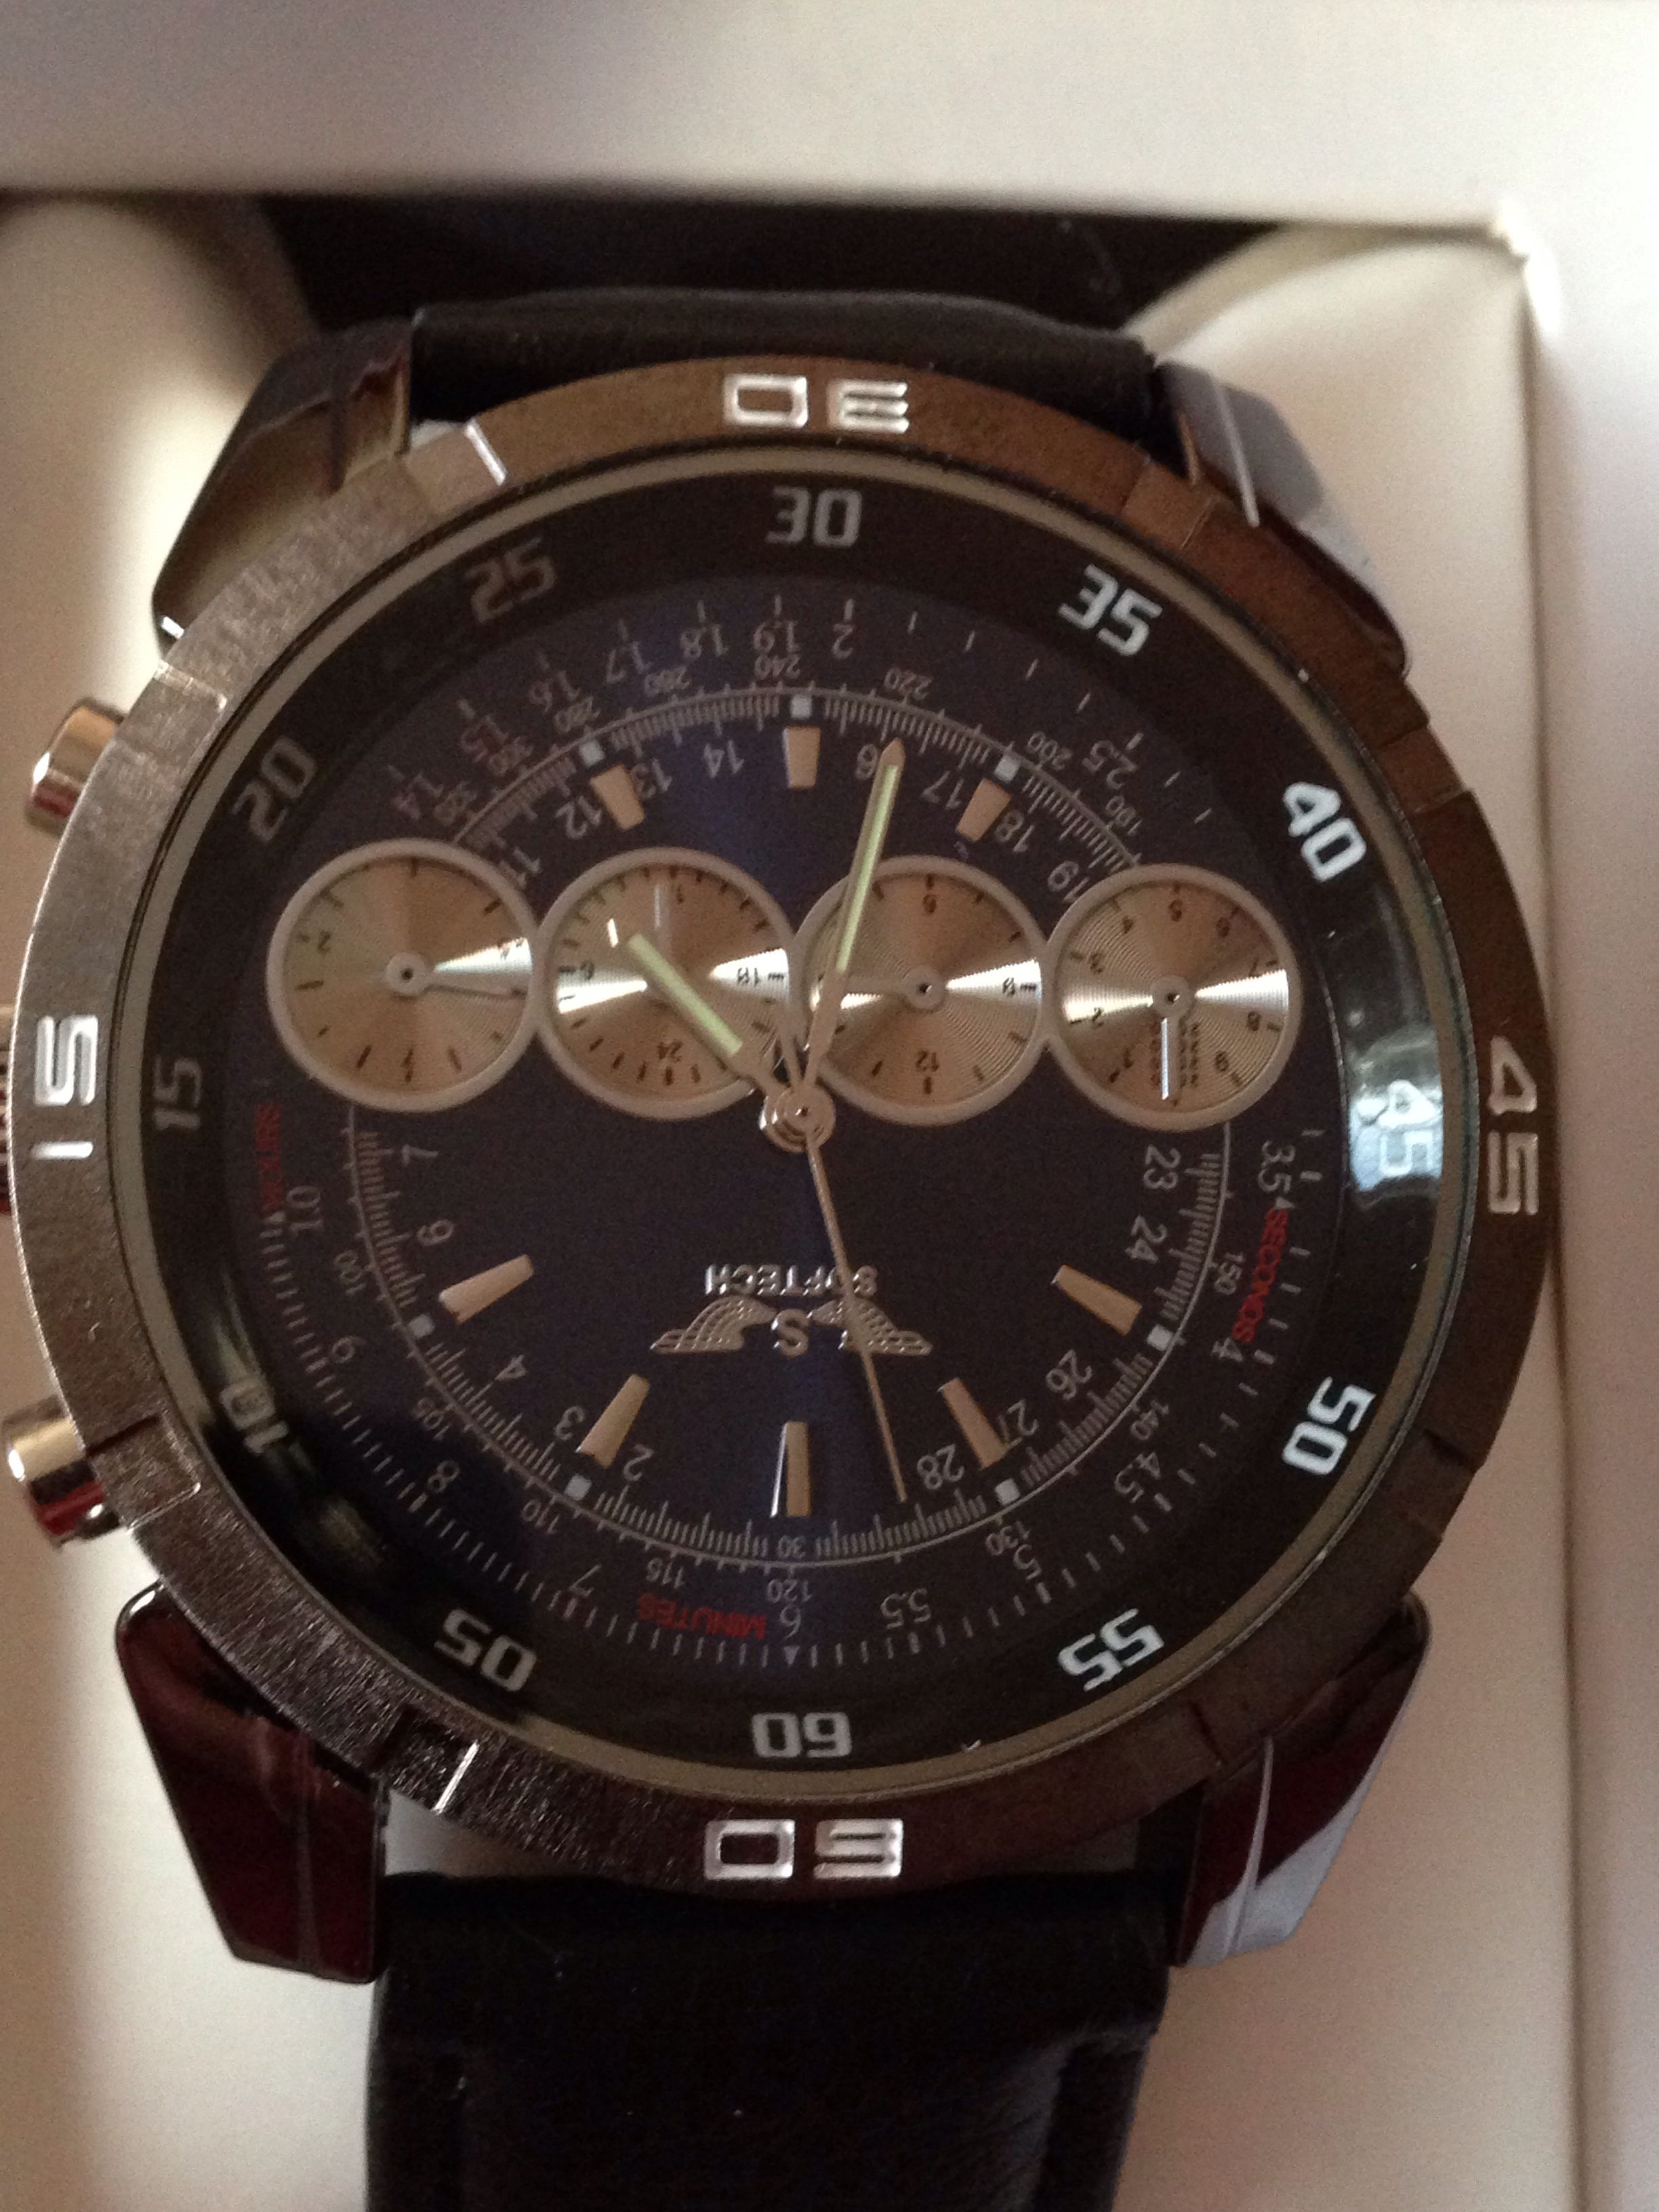 bcf3bc58f23 Watch by Softech London. Find this Pin and more on Luxury Men s Watches ...